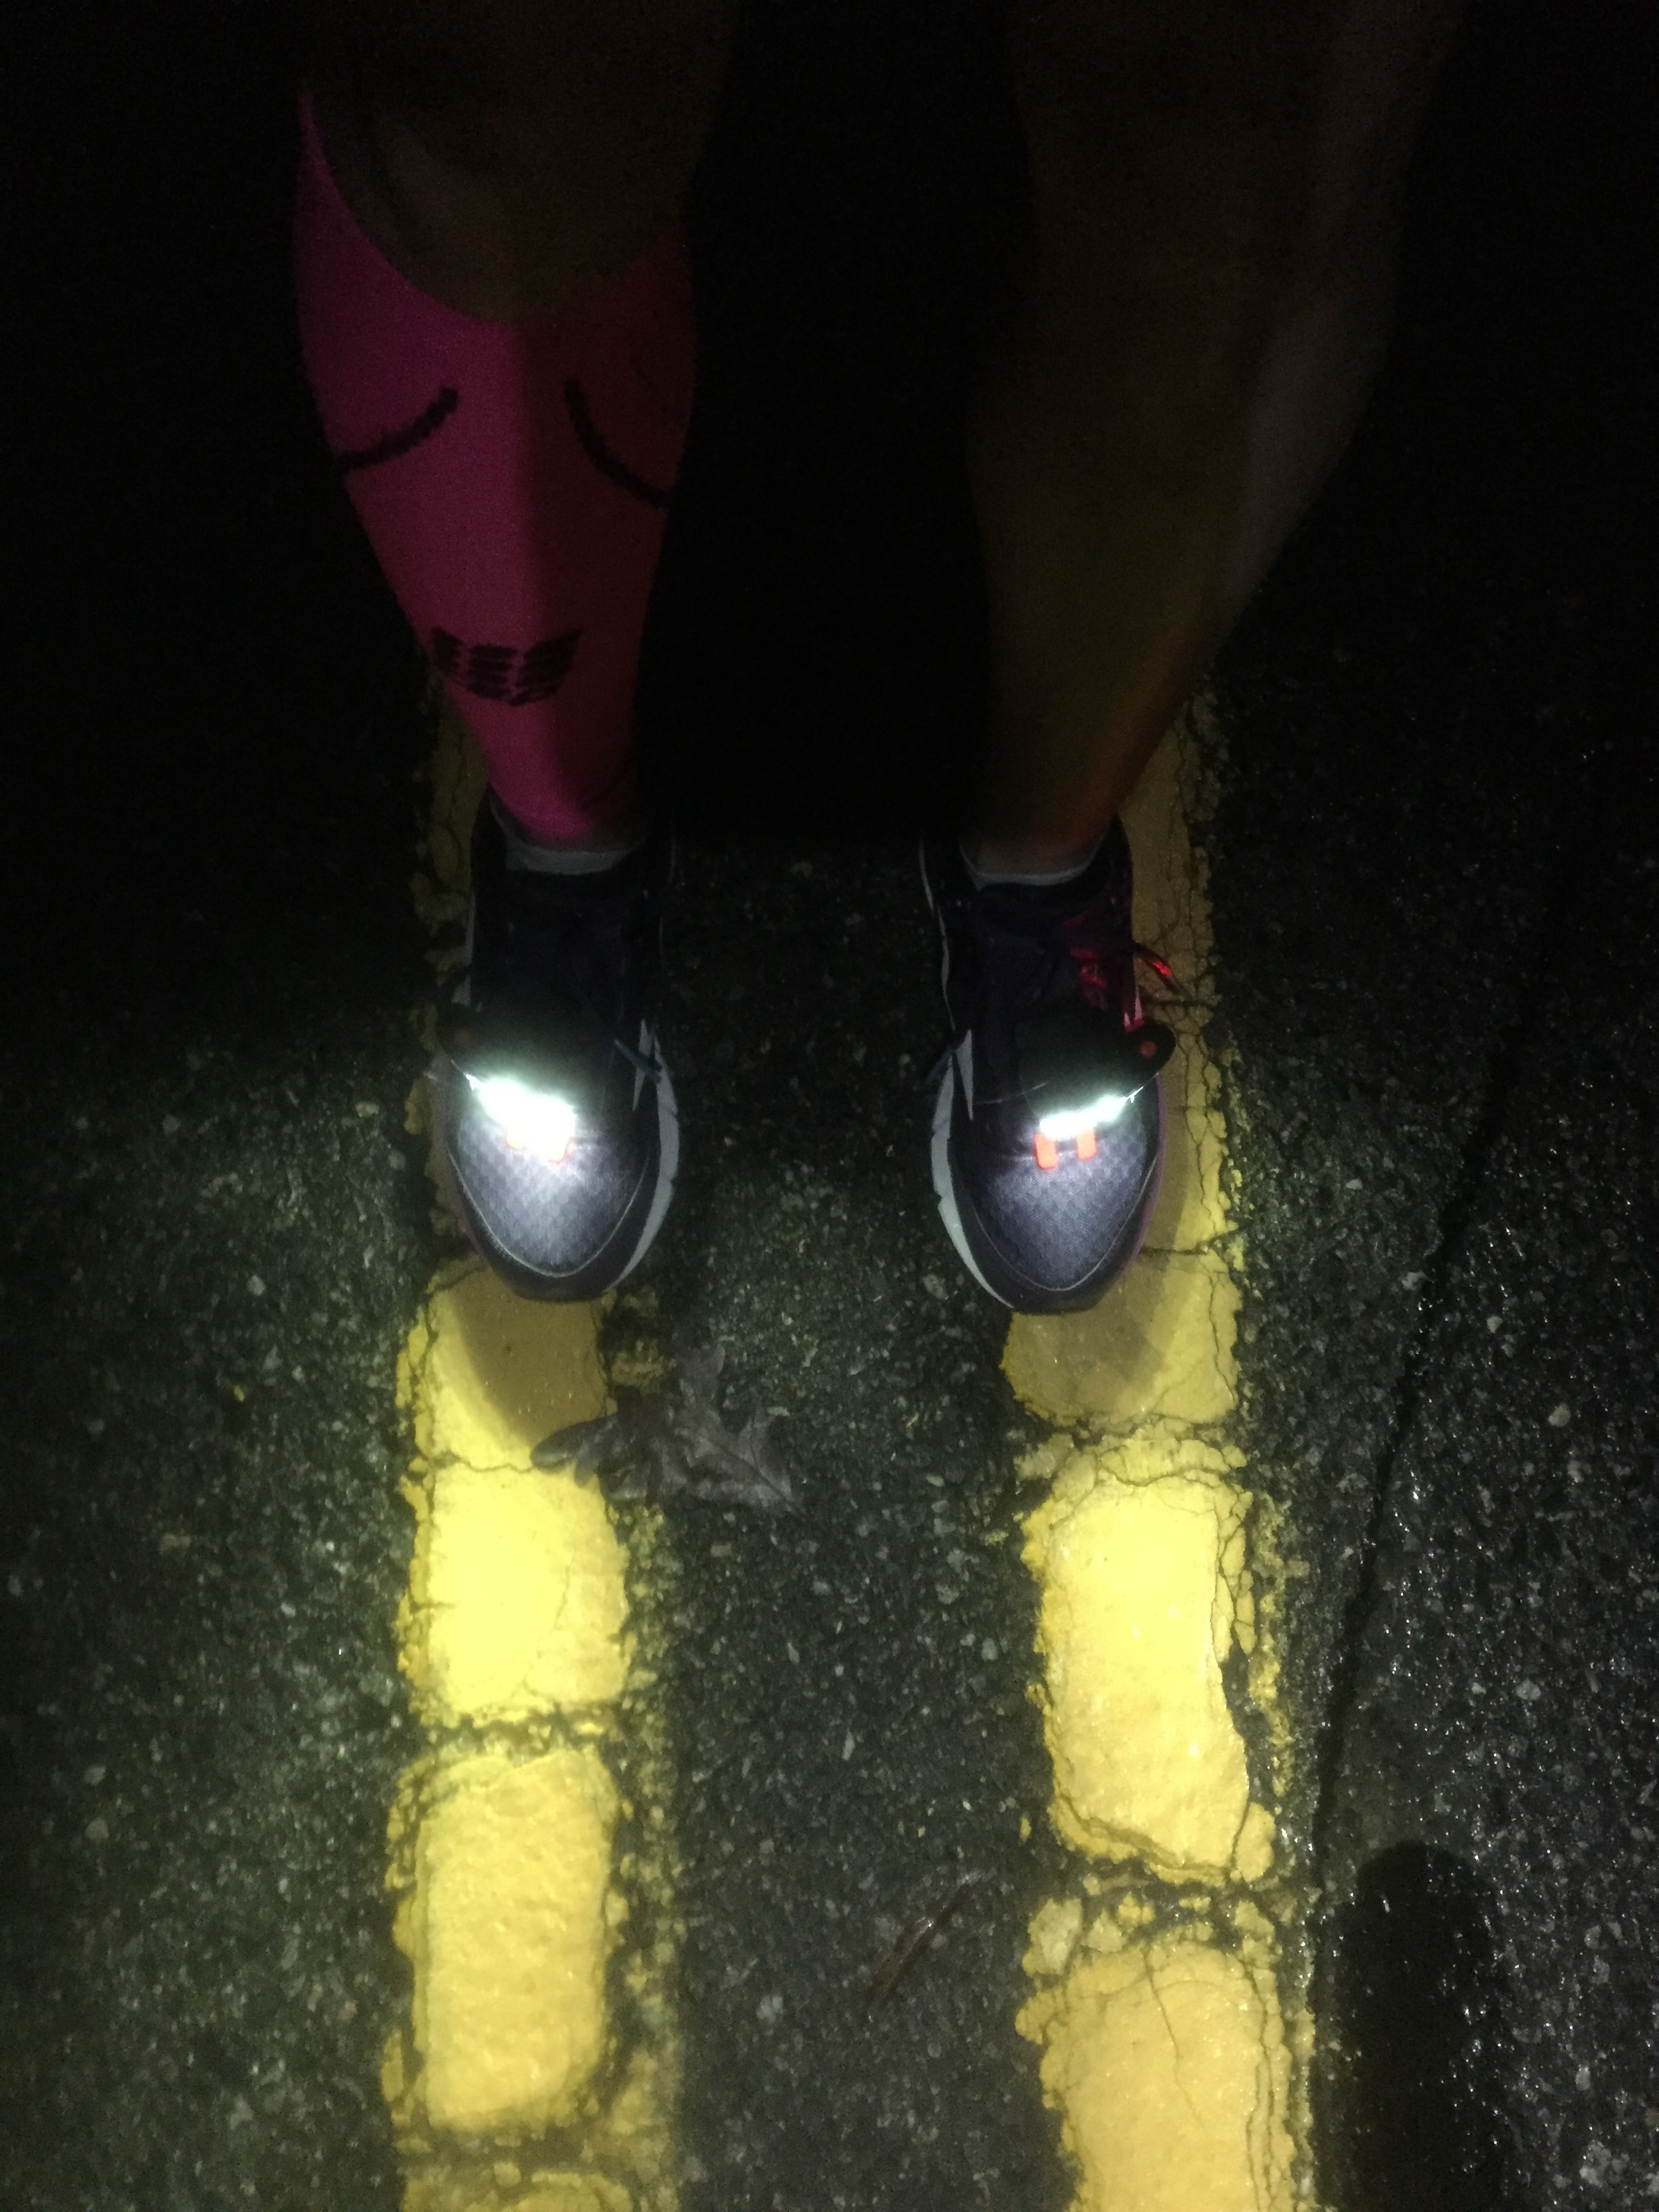 One of my first runs back - got to break in my NightRunner shoe lights!